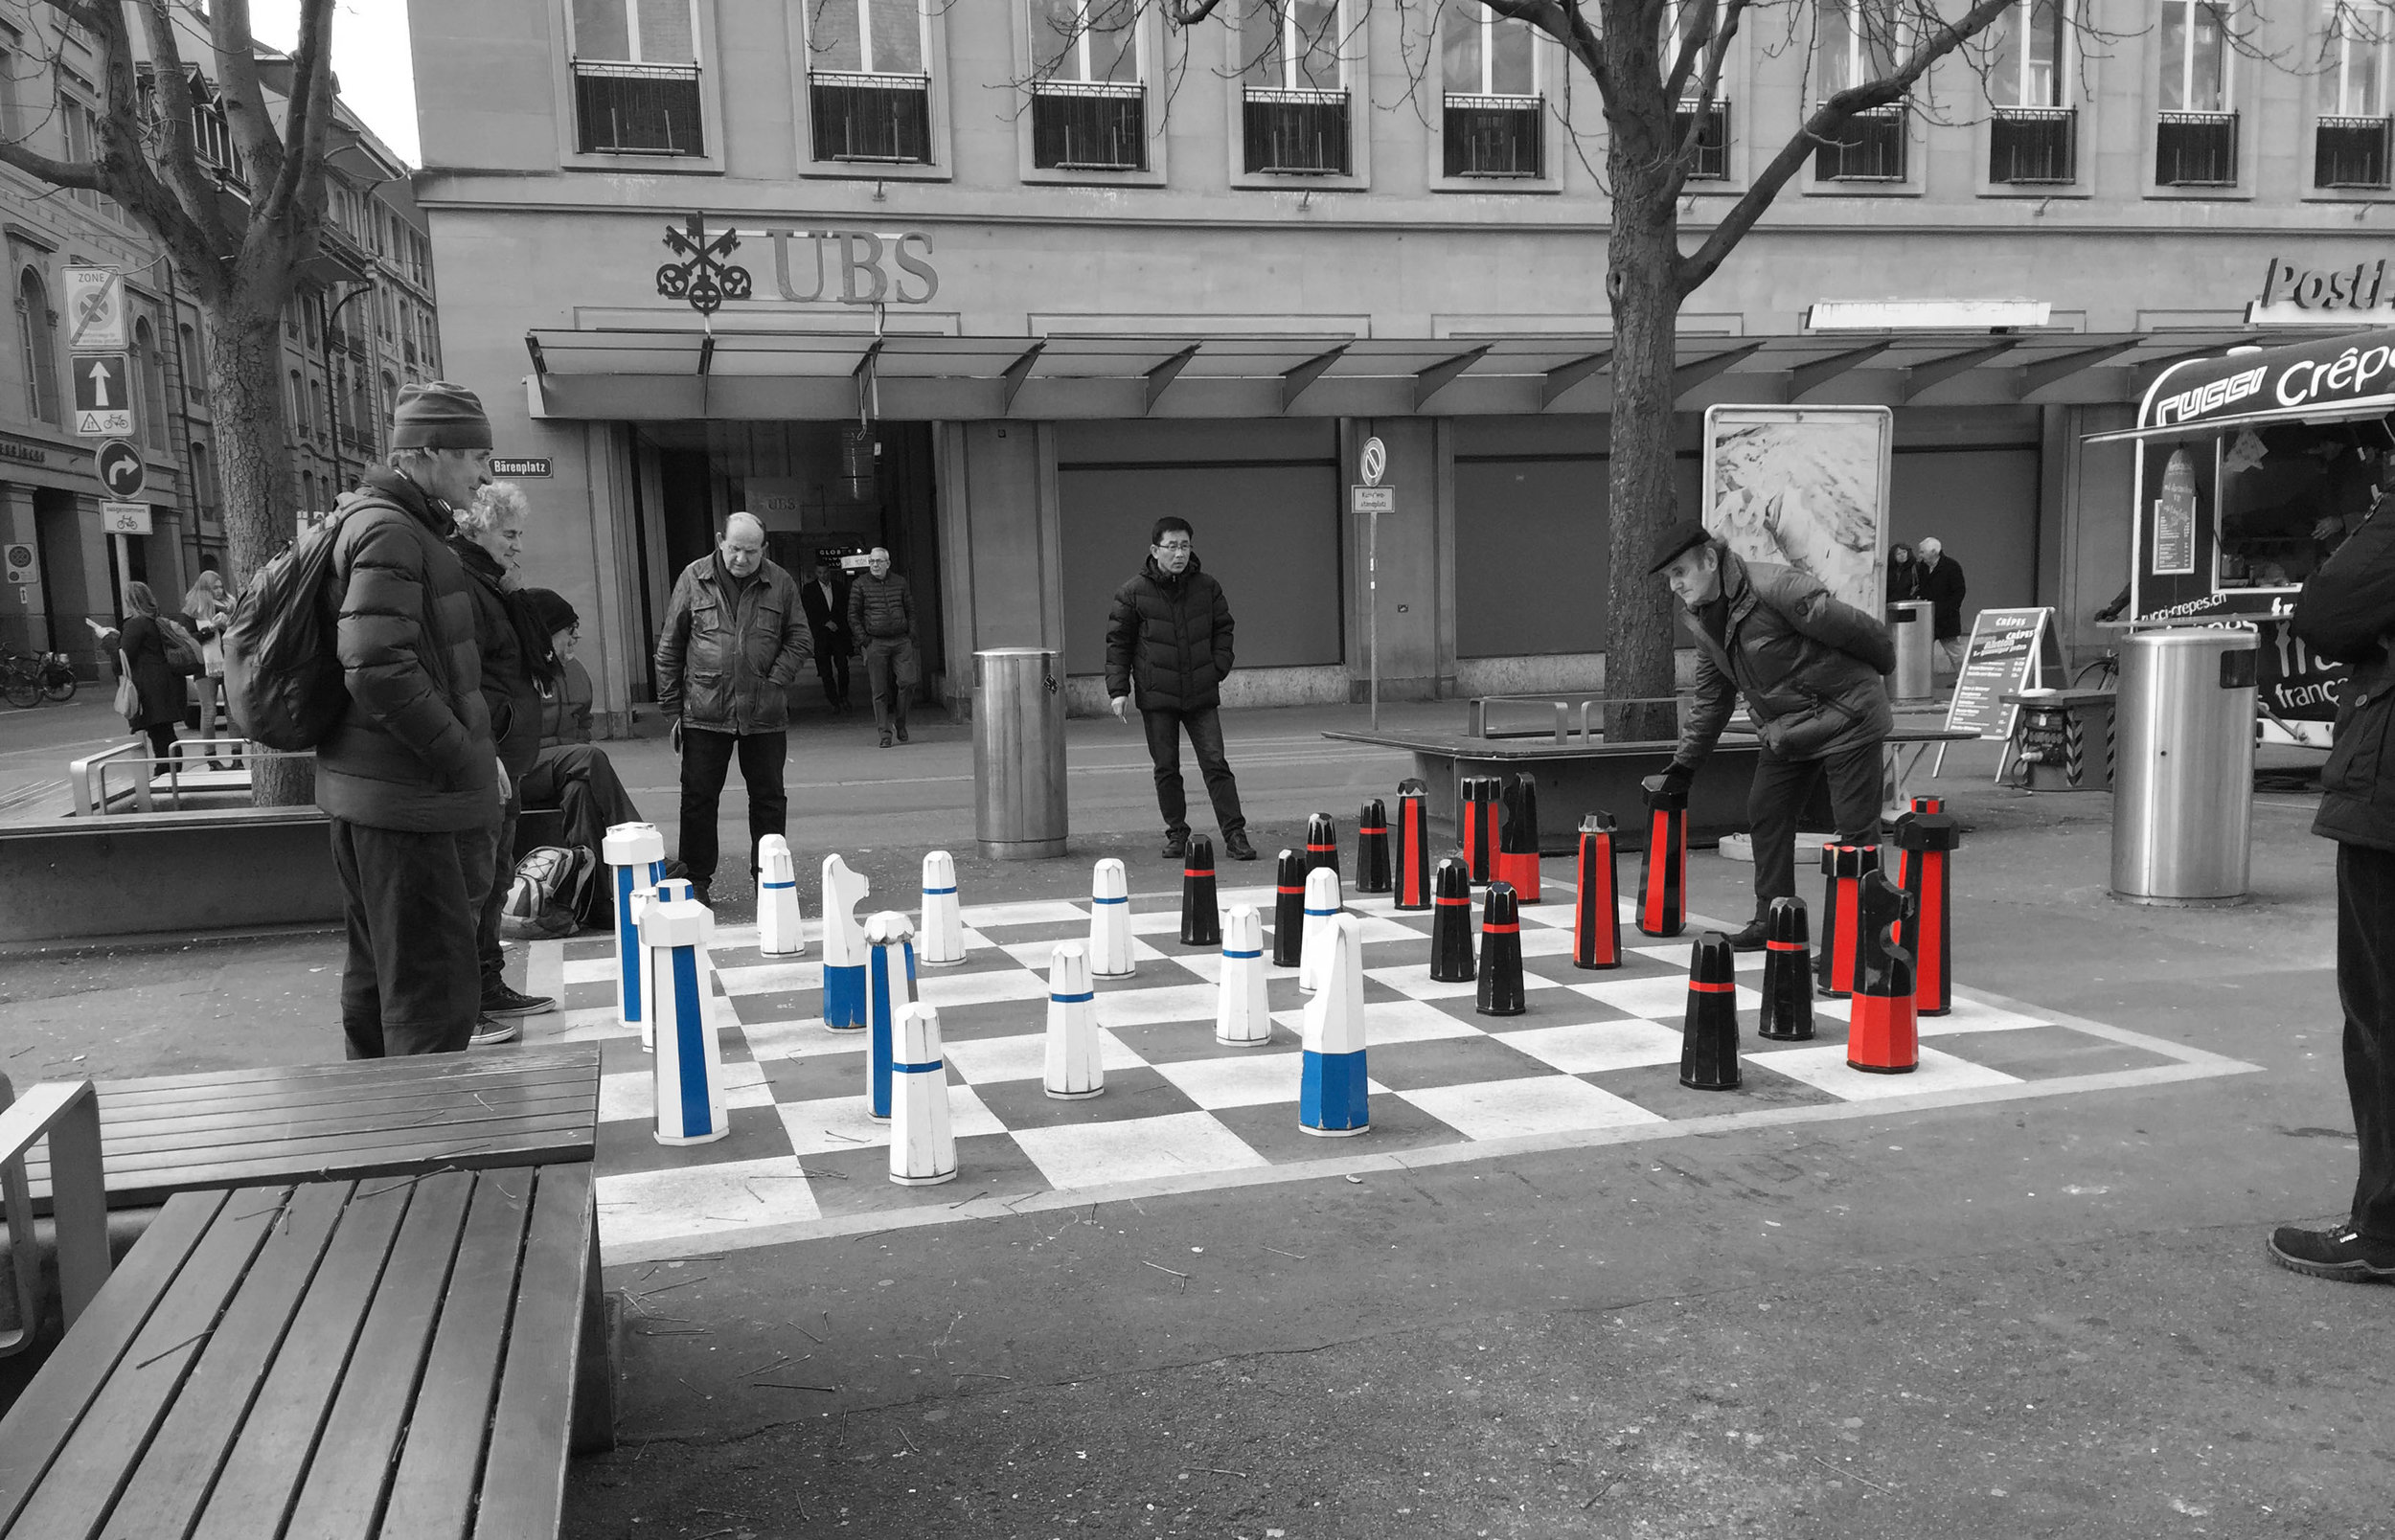 City Chess Game - Bern, Switzerland (Captured by Emily Sproule)